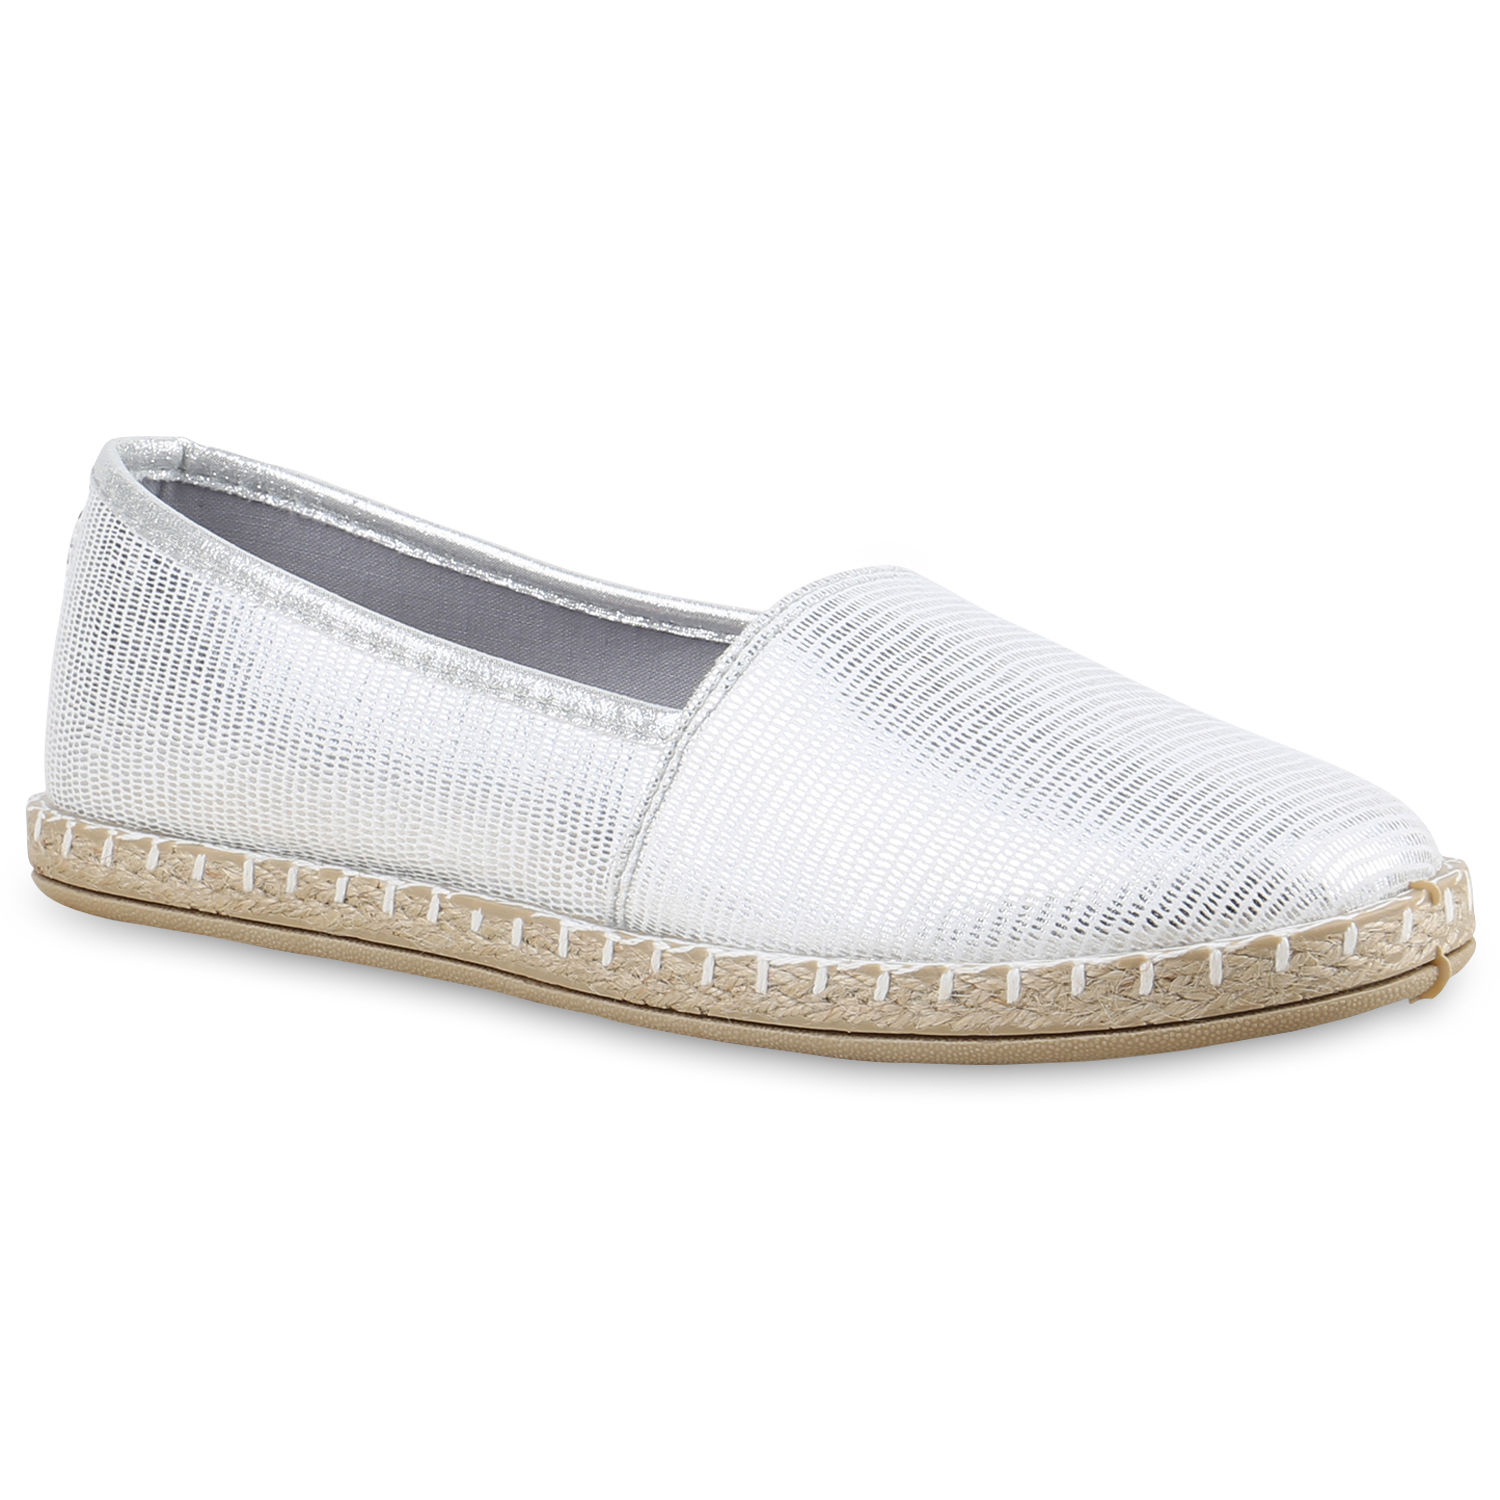 damen slipper espadrilles schuhe flats metallic glitzer slipper 815741 mode ebay. Black Bedroom Furniture Sets. Home Design Ideas